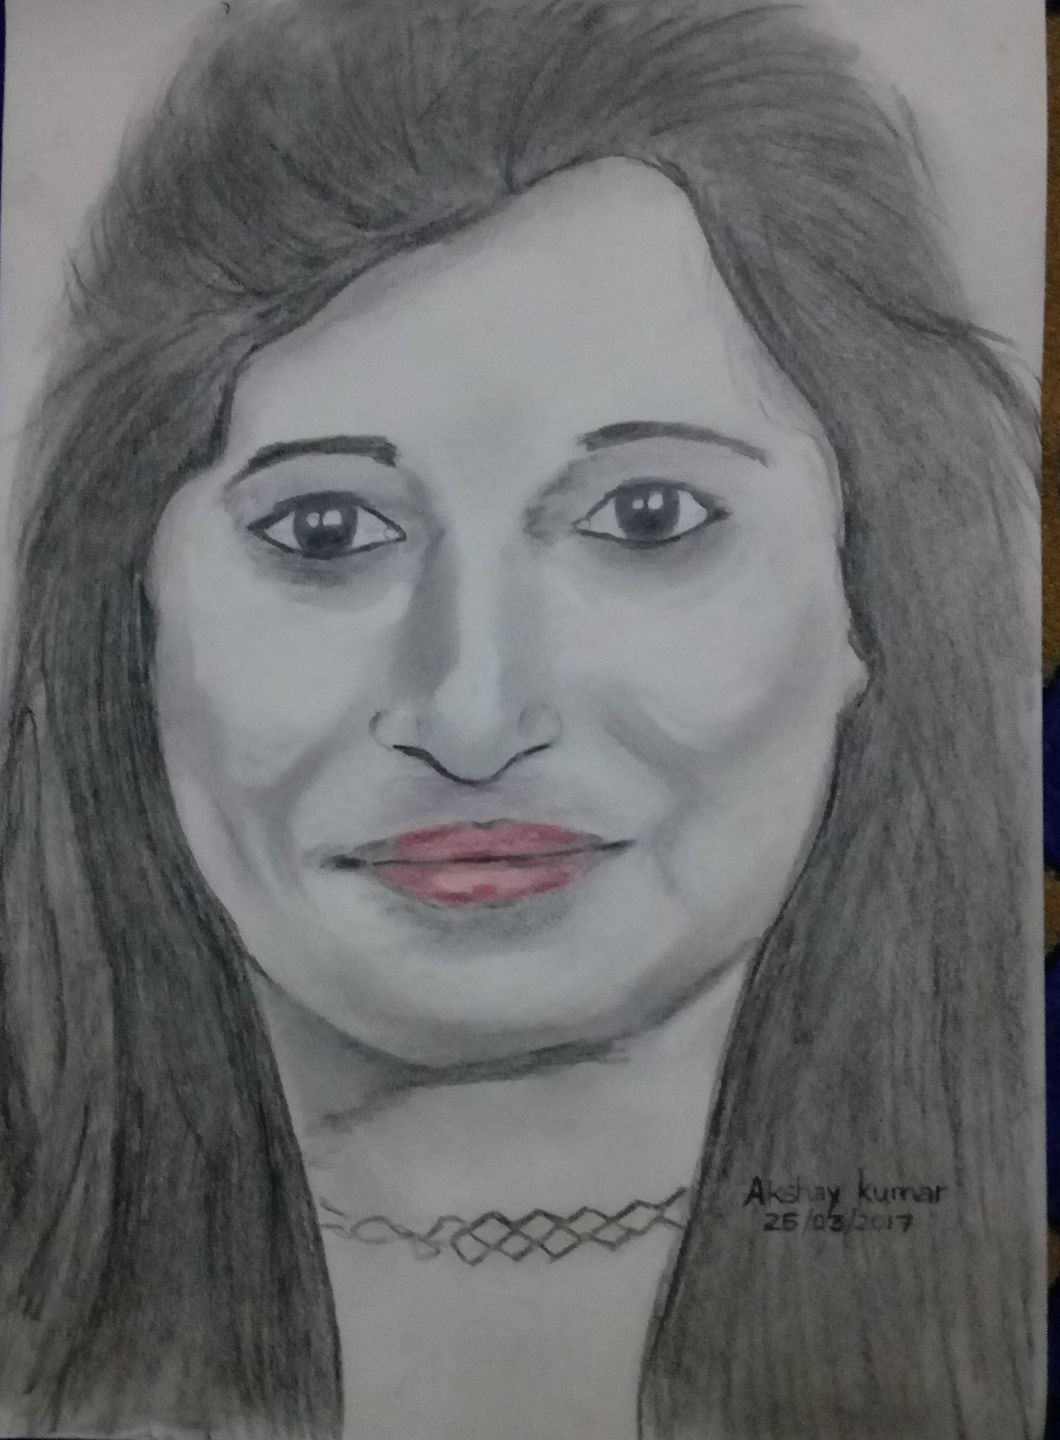 Akshay kumar pencil sketch of indian girl smiling face by akshay kumar